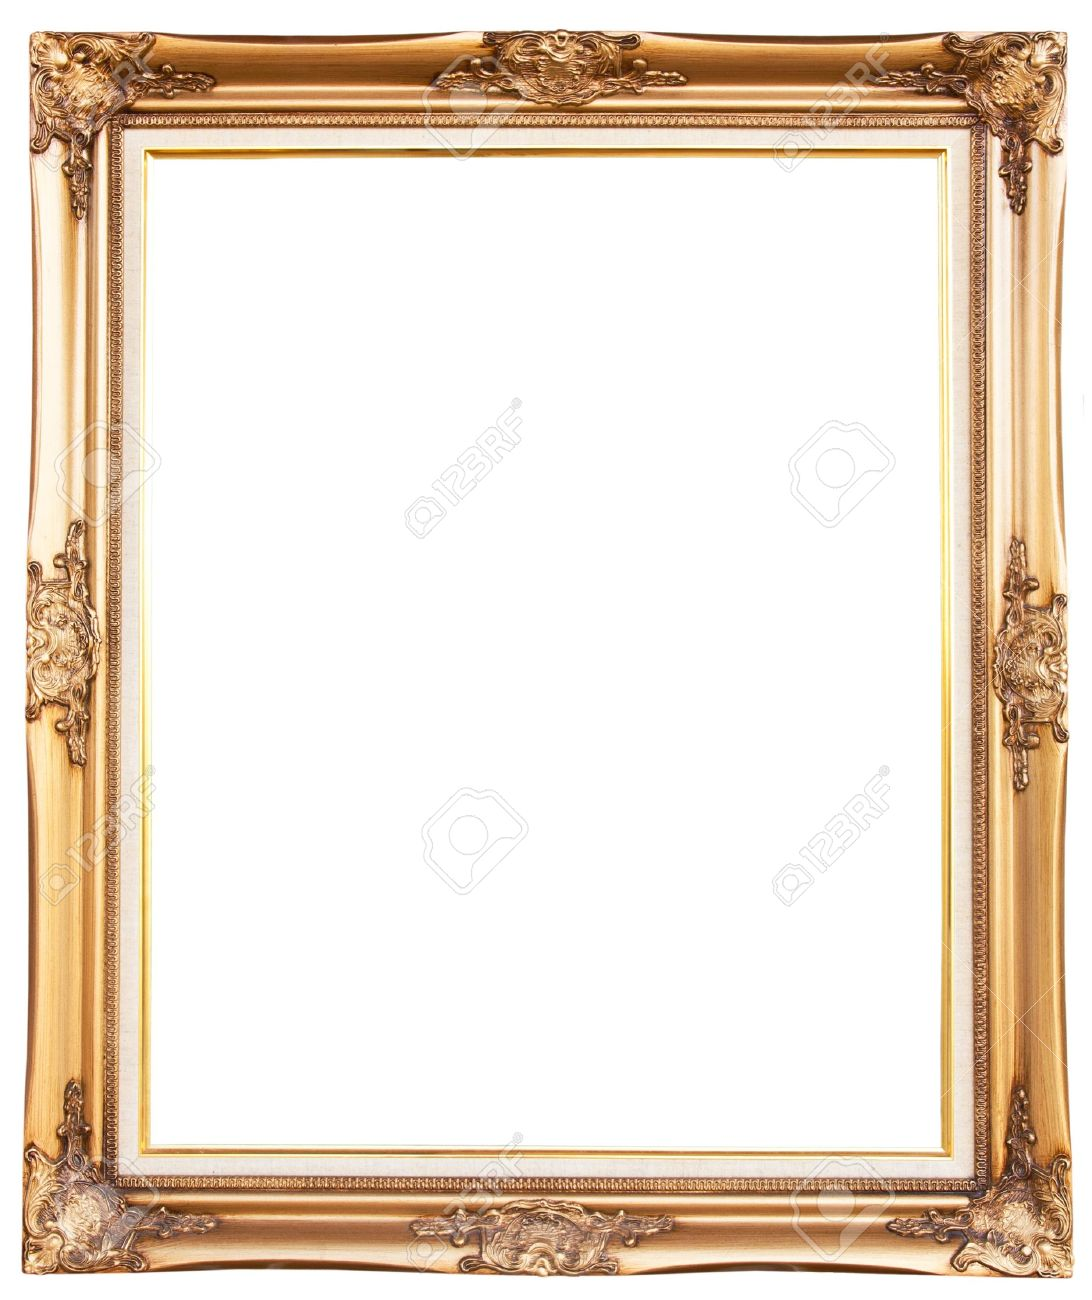 85e0c9ff5fc9 Old Antique Gold Frame Over White Background Stock Photo Picture